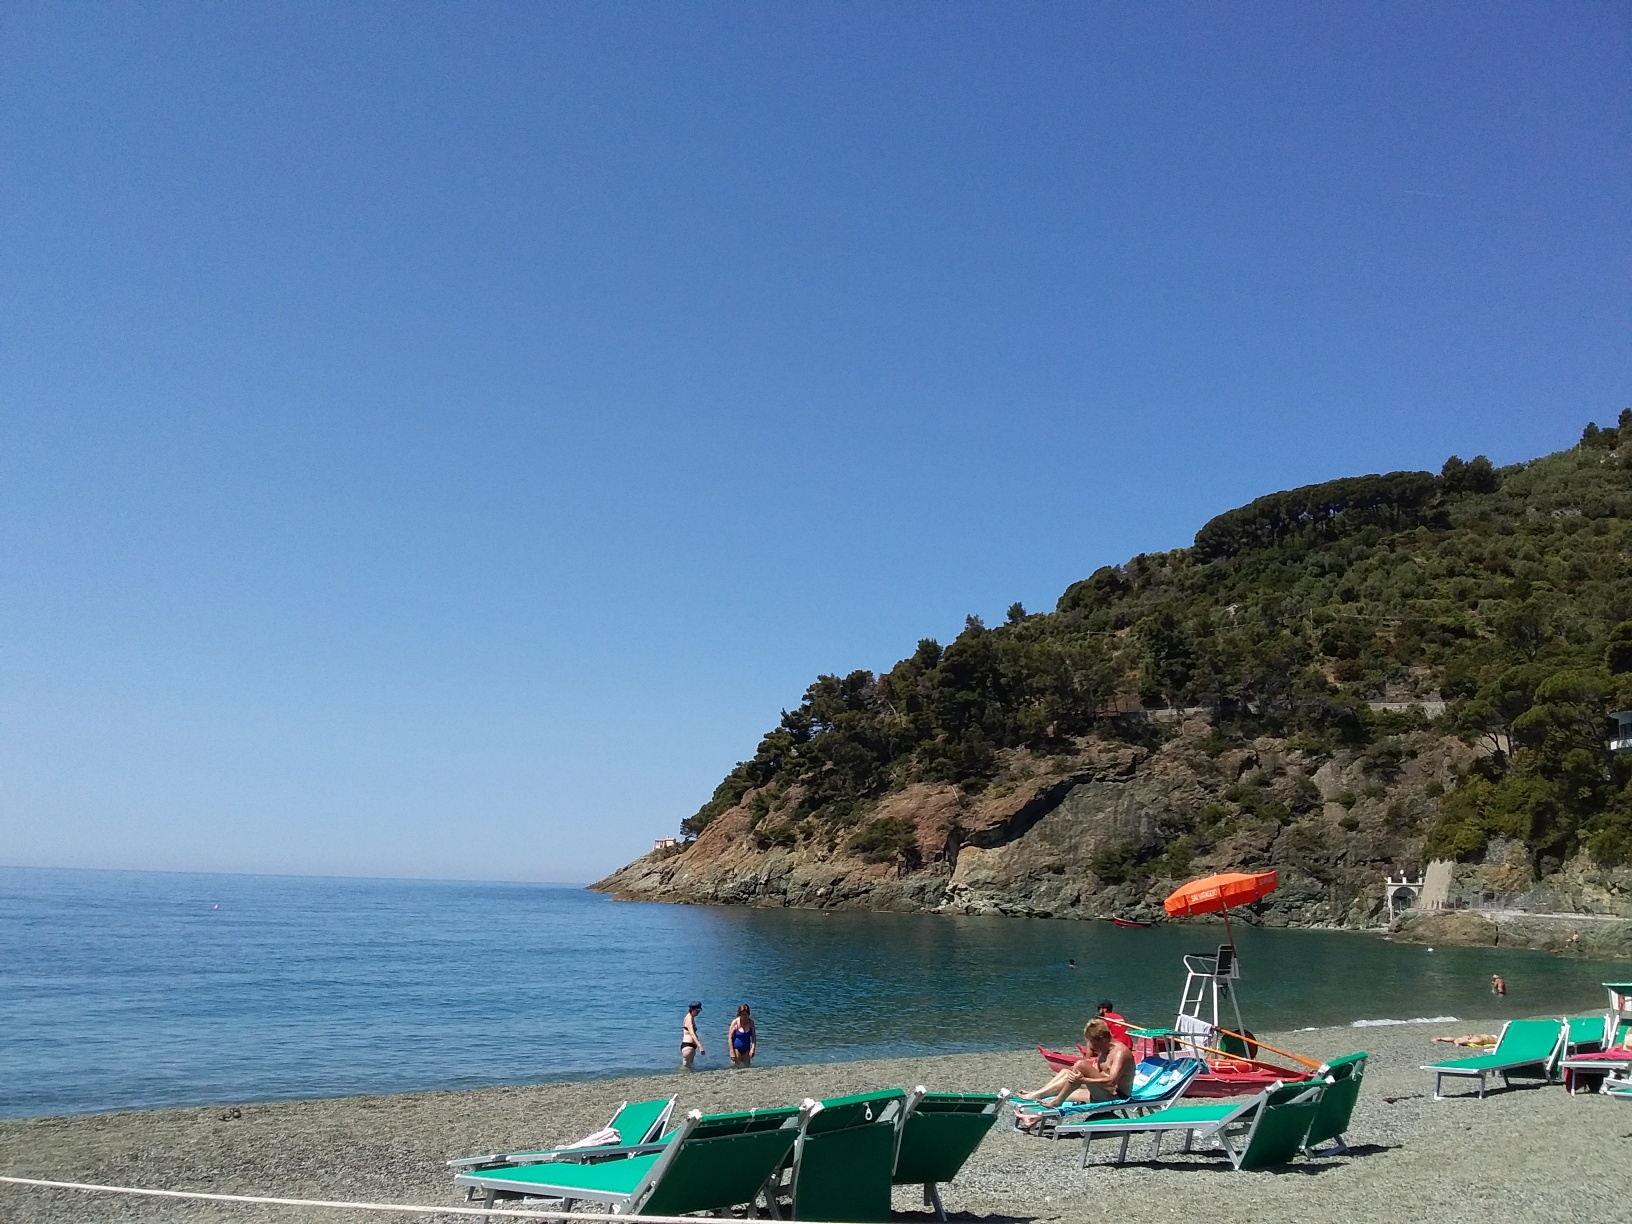 The beach at Bonassola